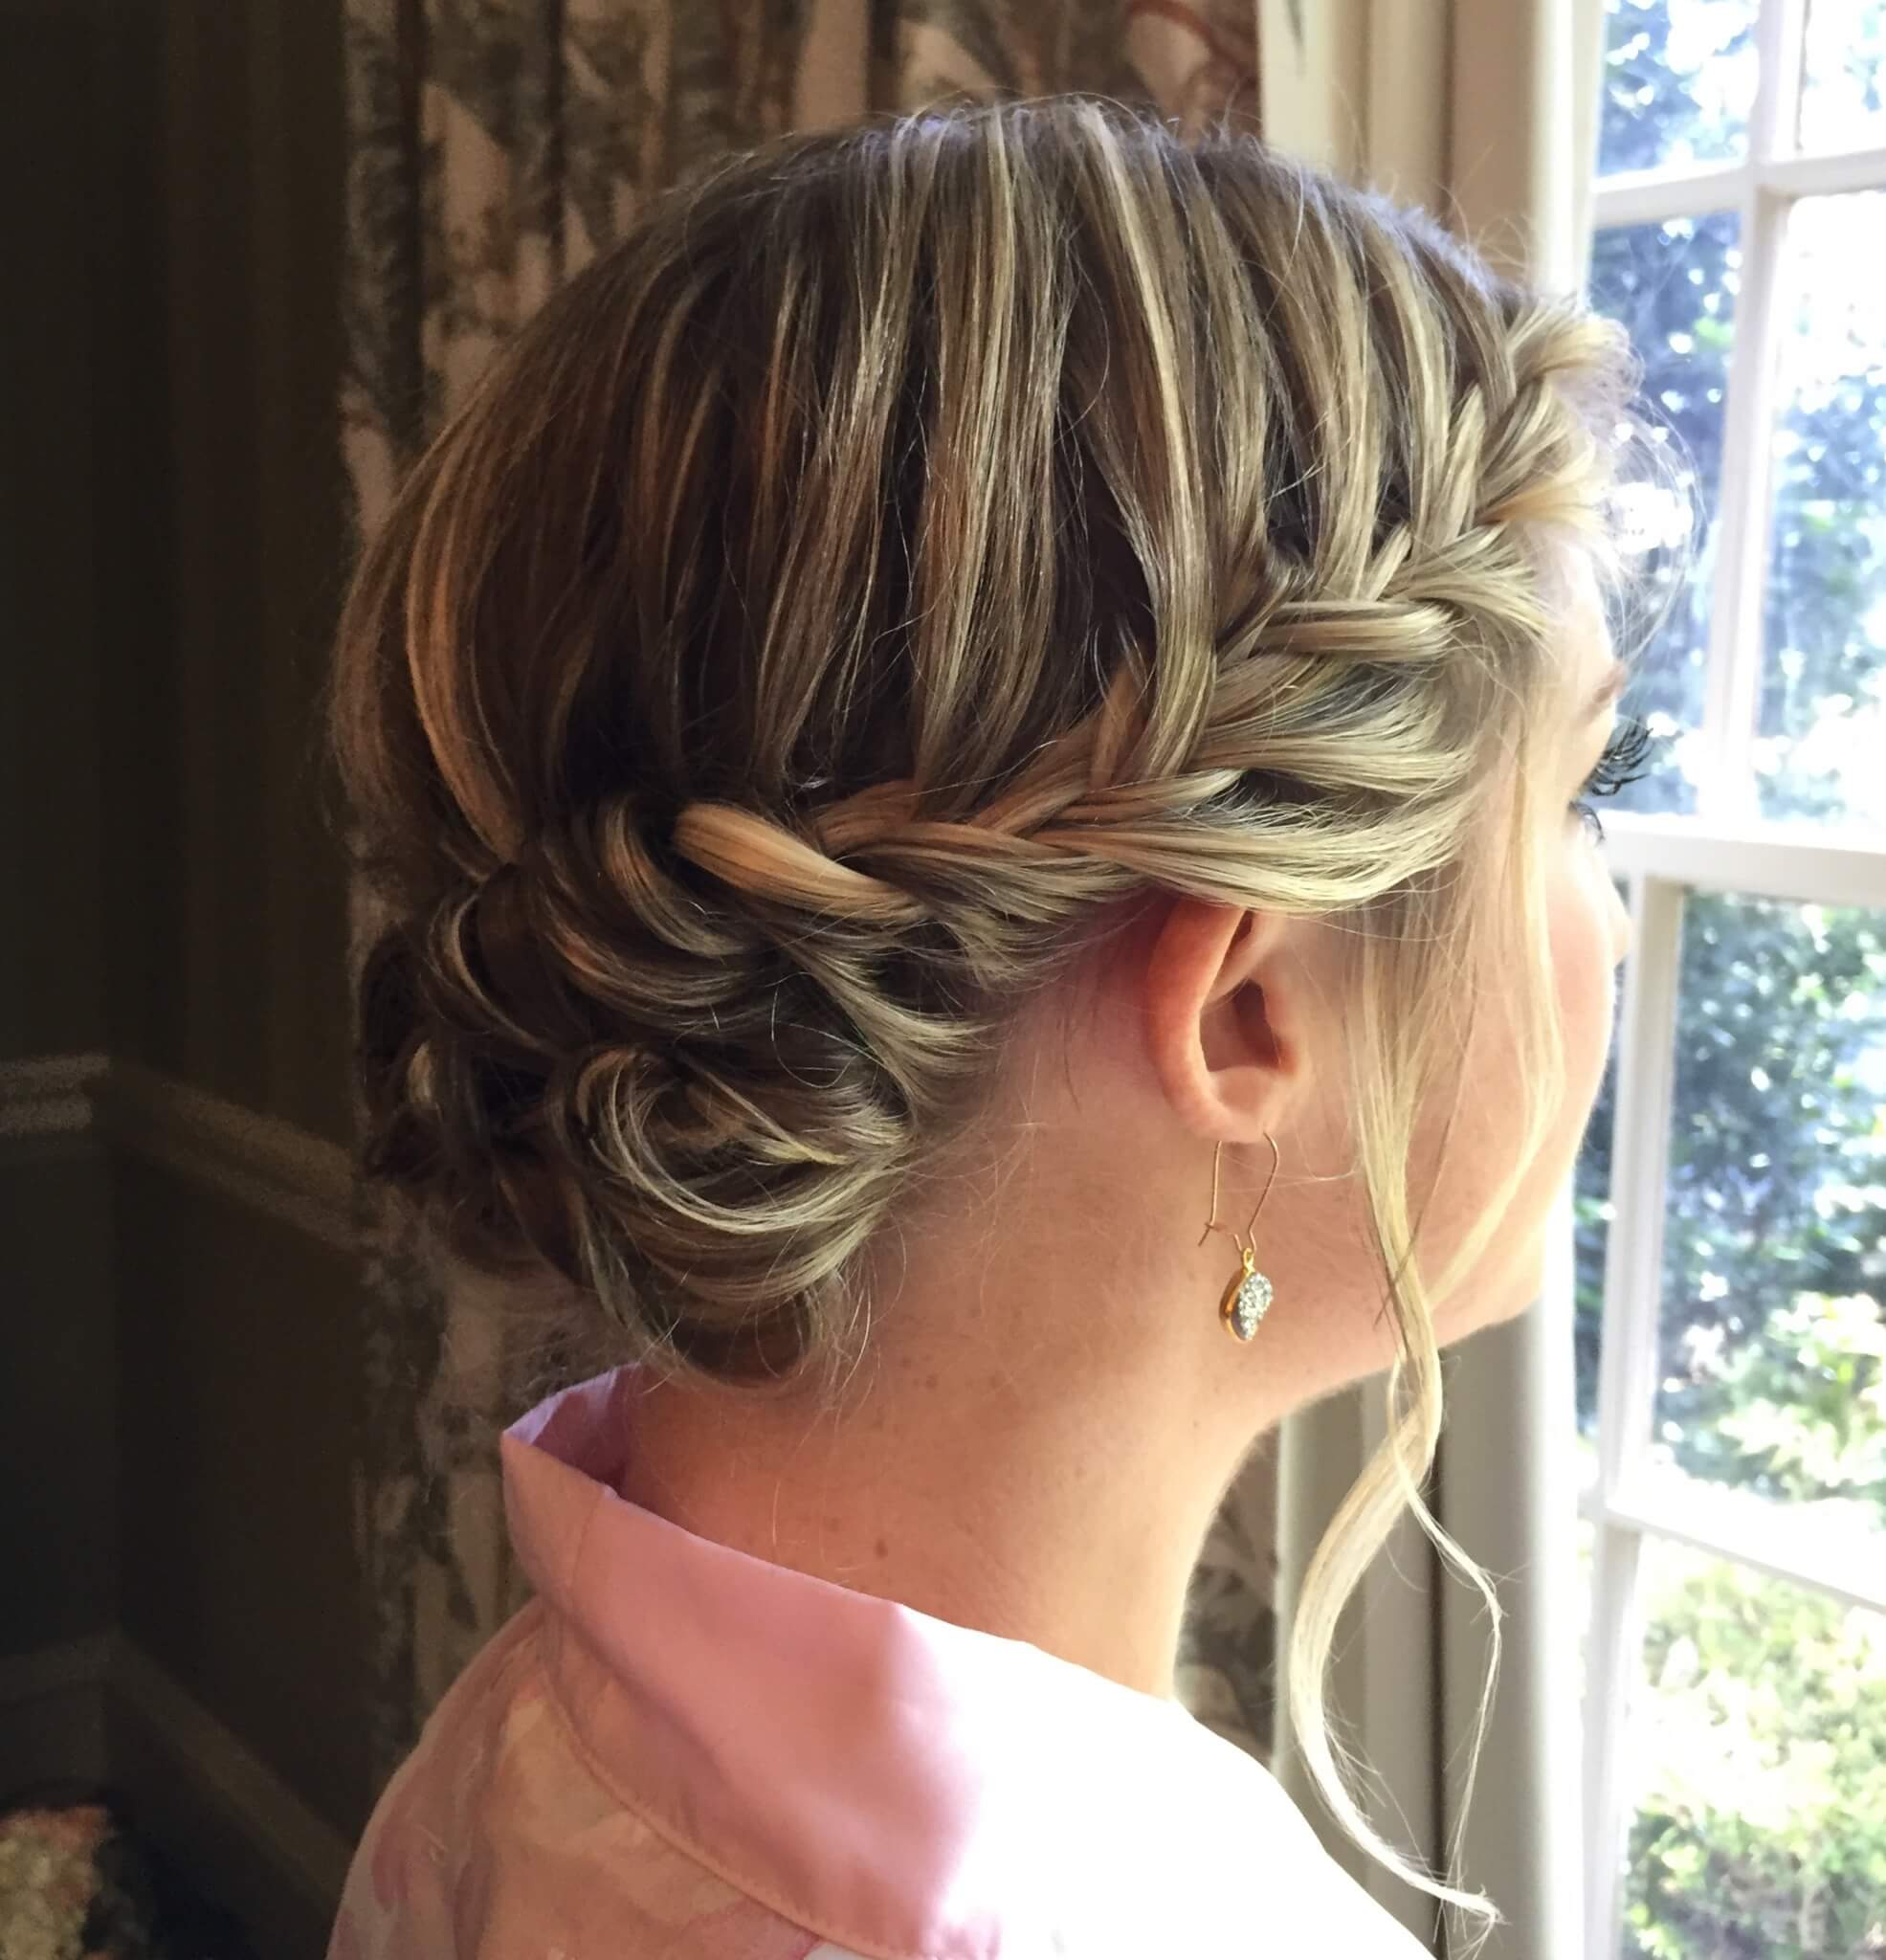 hair-salon-jacksonville-wedding-hairstyles-99-01jpg